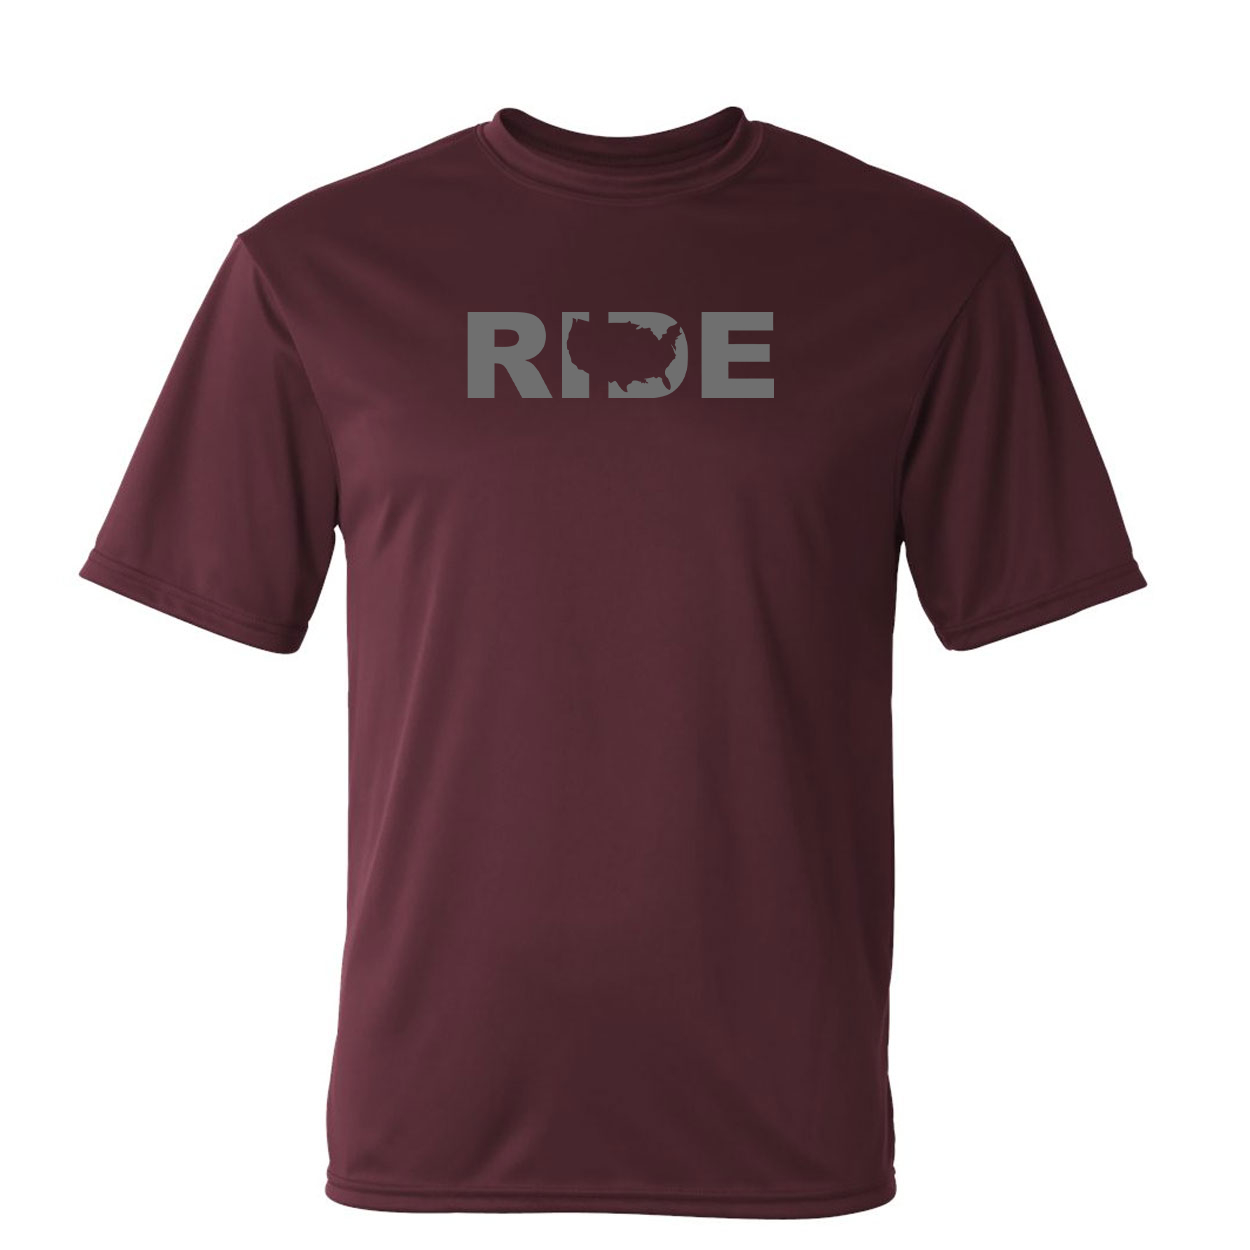 Ride United States Classic Unisex Performance T-Shirt Maroon (Gray Logo)